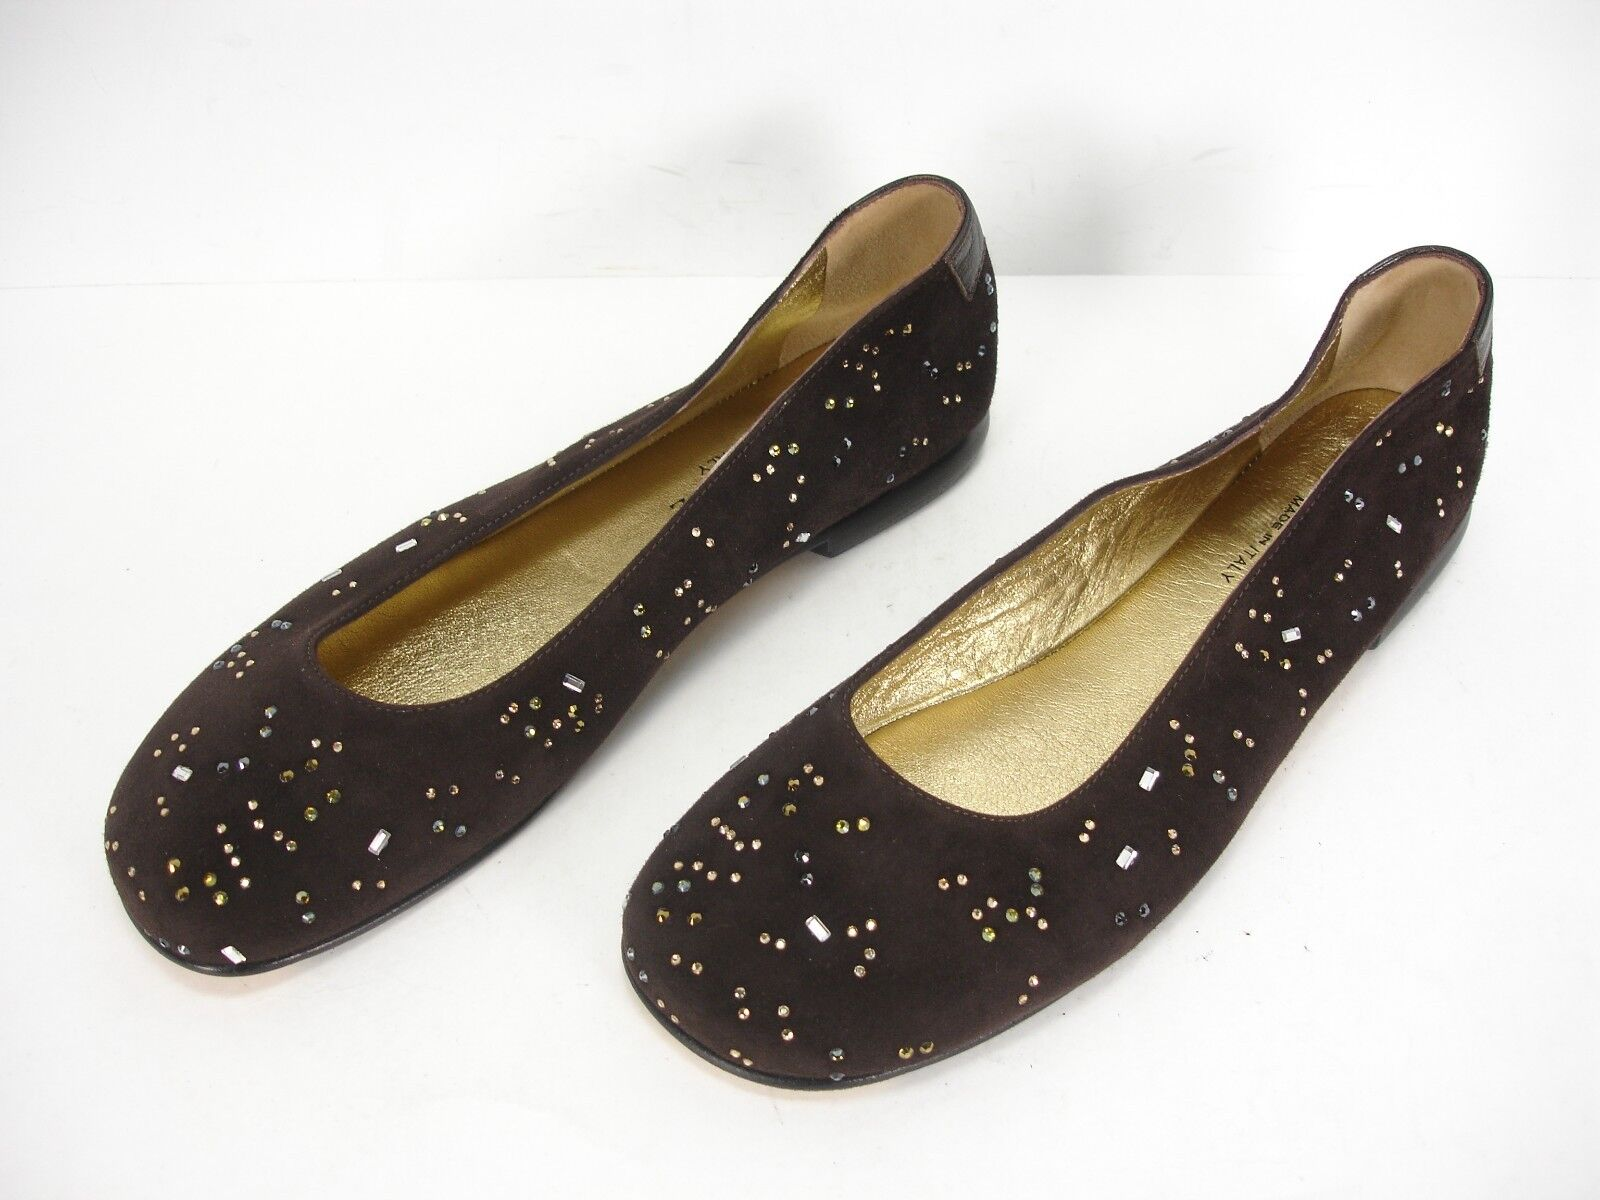 NEW TARYN pink BROWN SUEDE CRYSTALS SLIP ON BALLET FLATS SHOES WOMEN'S 38 M